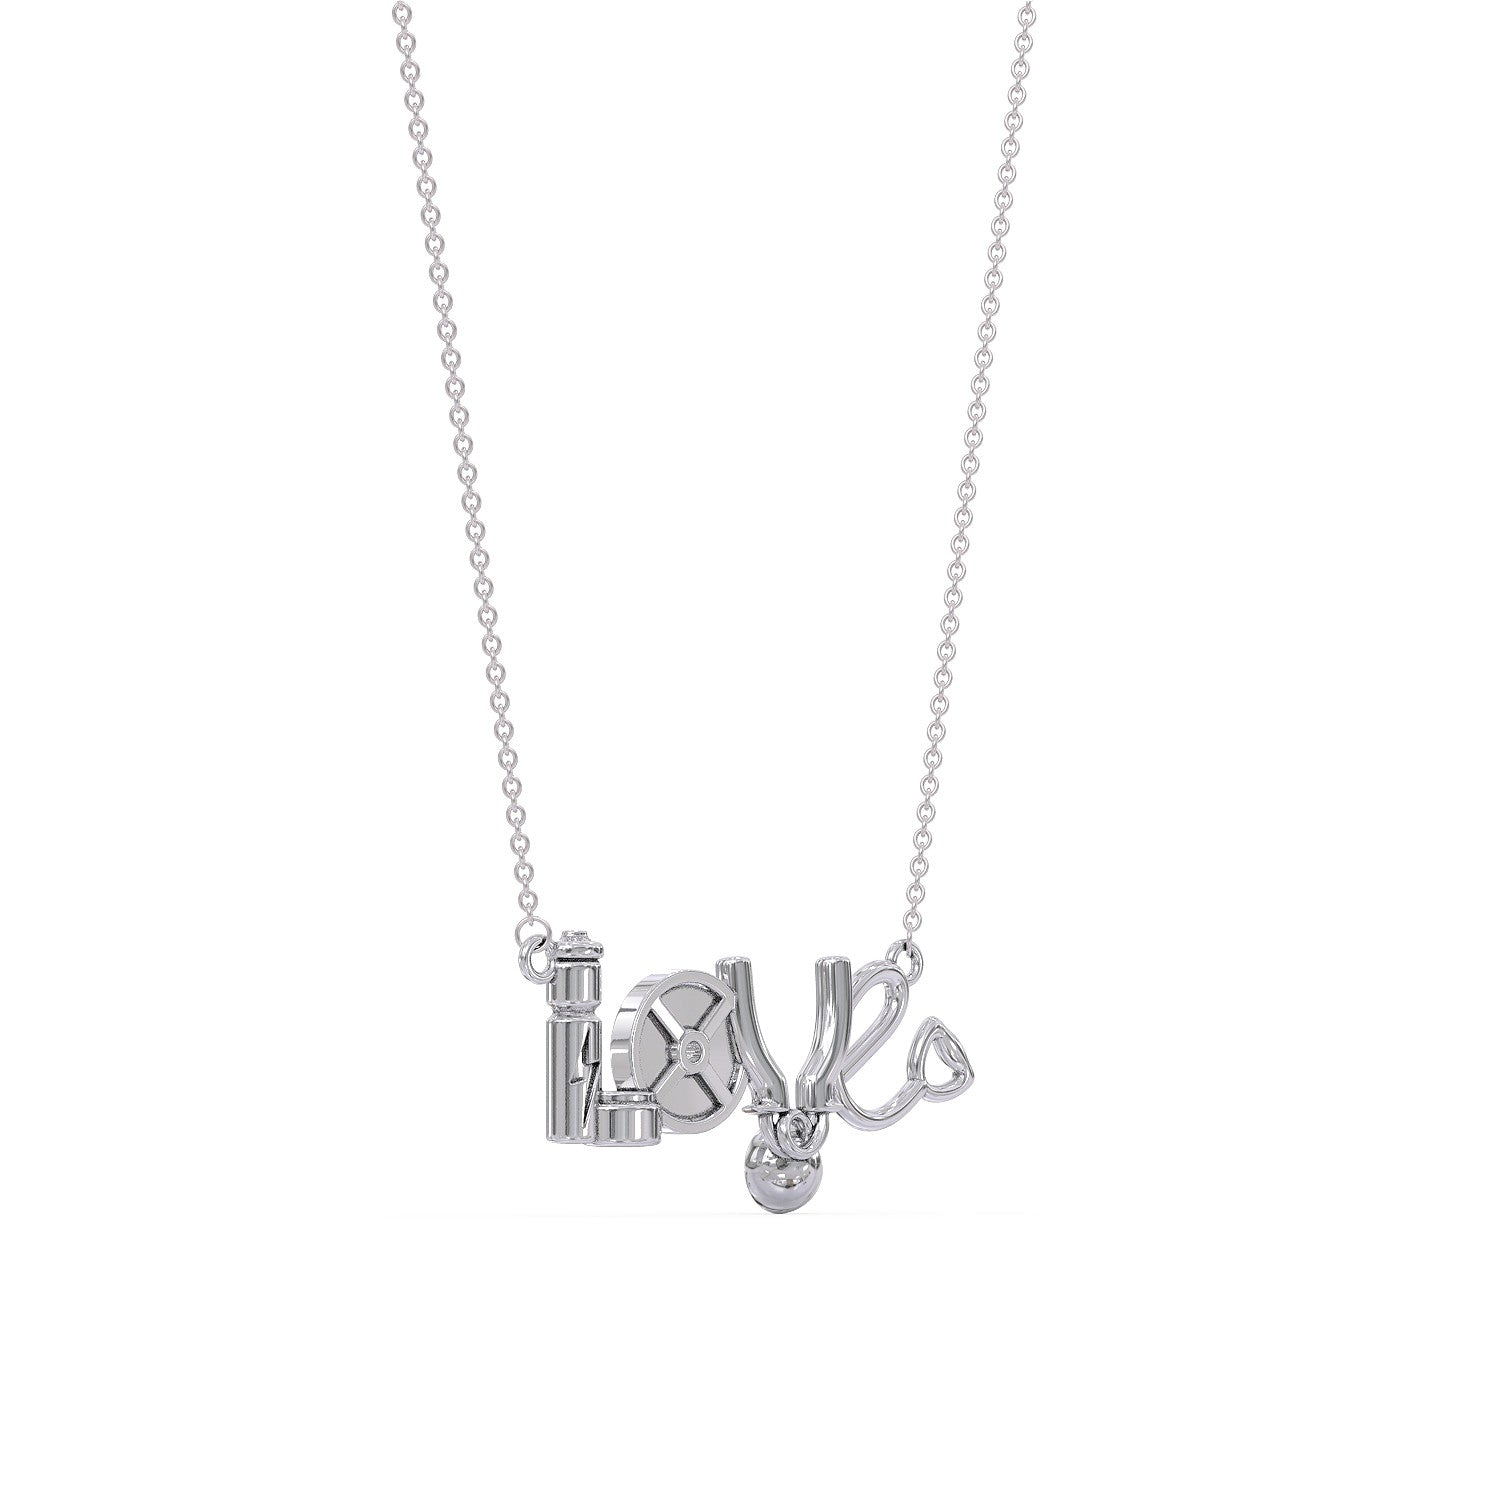 Weight Training LOVE Pendant Necklace